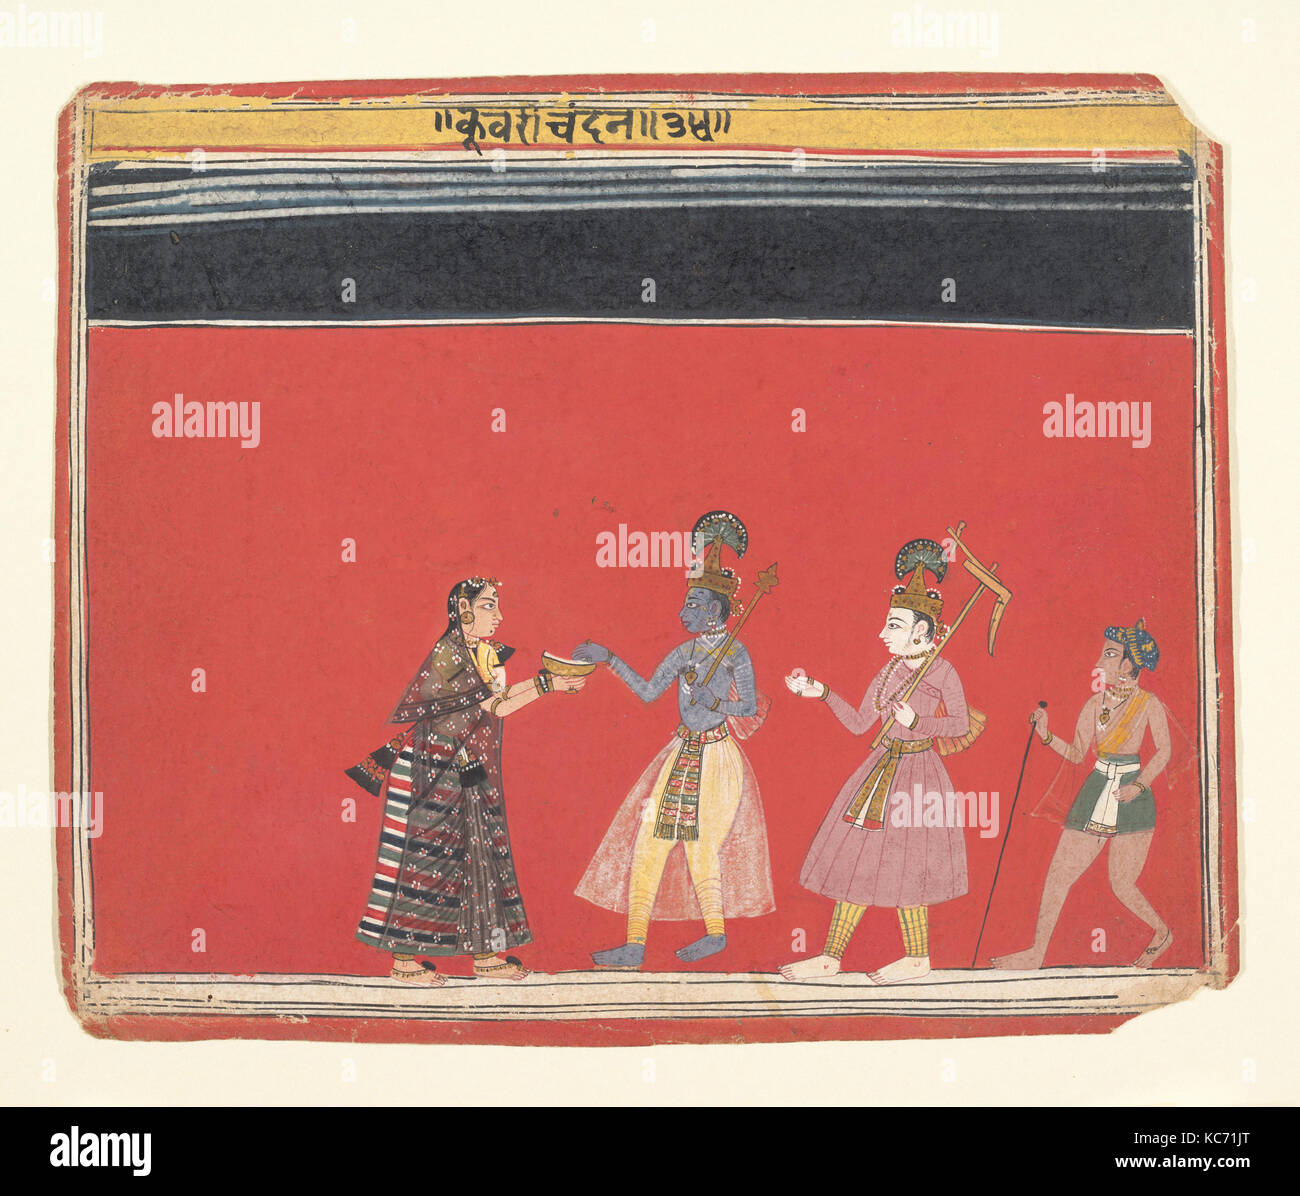 Krishna Accepts an Offering from the Hunchbacked Woman Trivakra: Page from a Bhagavata Purana Series, ca. 1650 - Stock Image